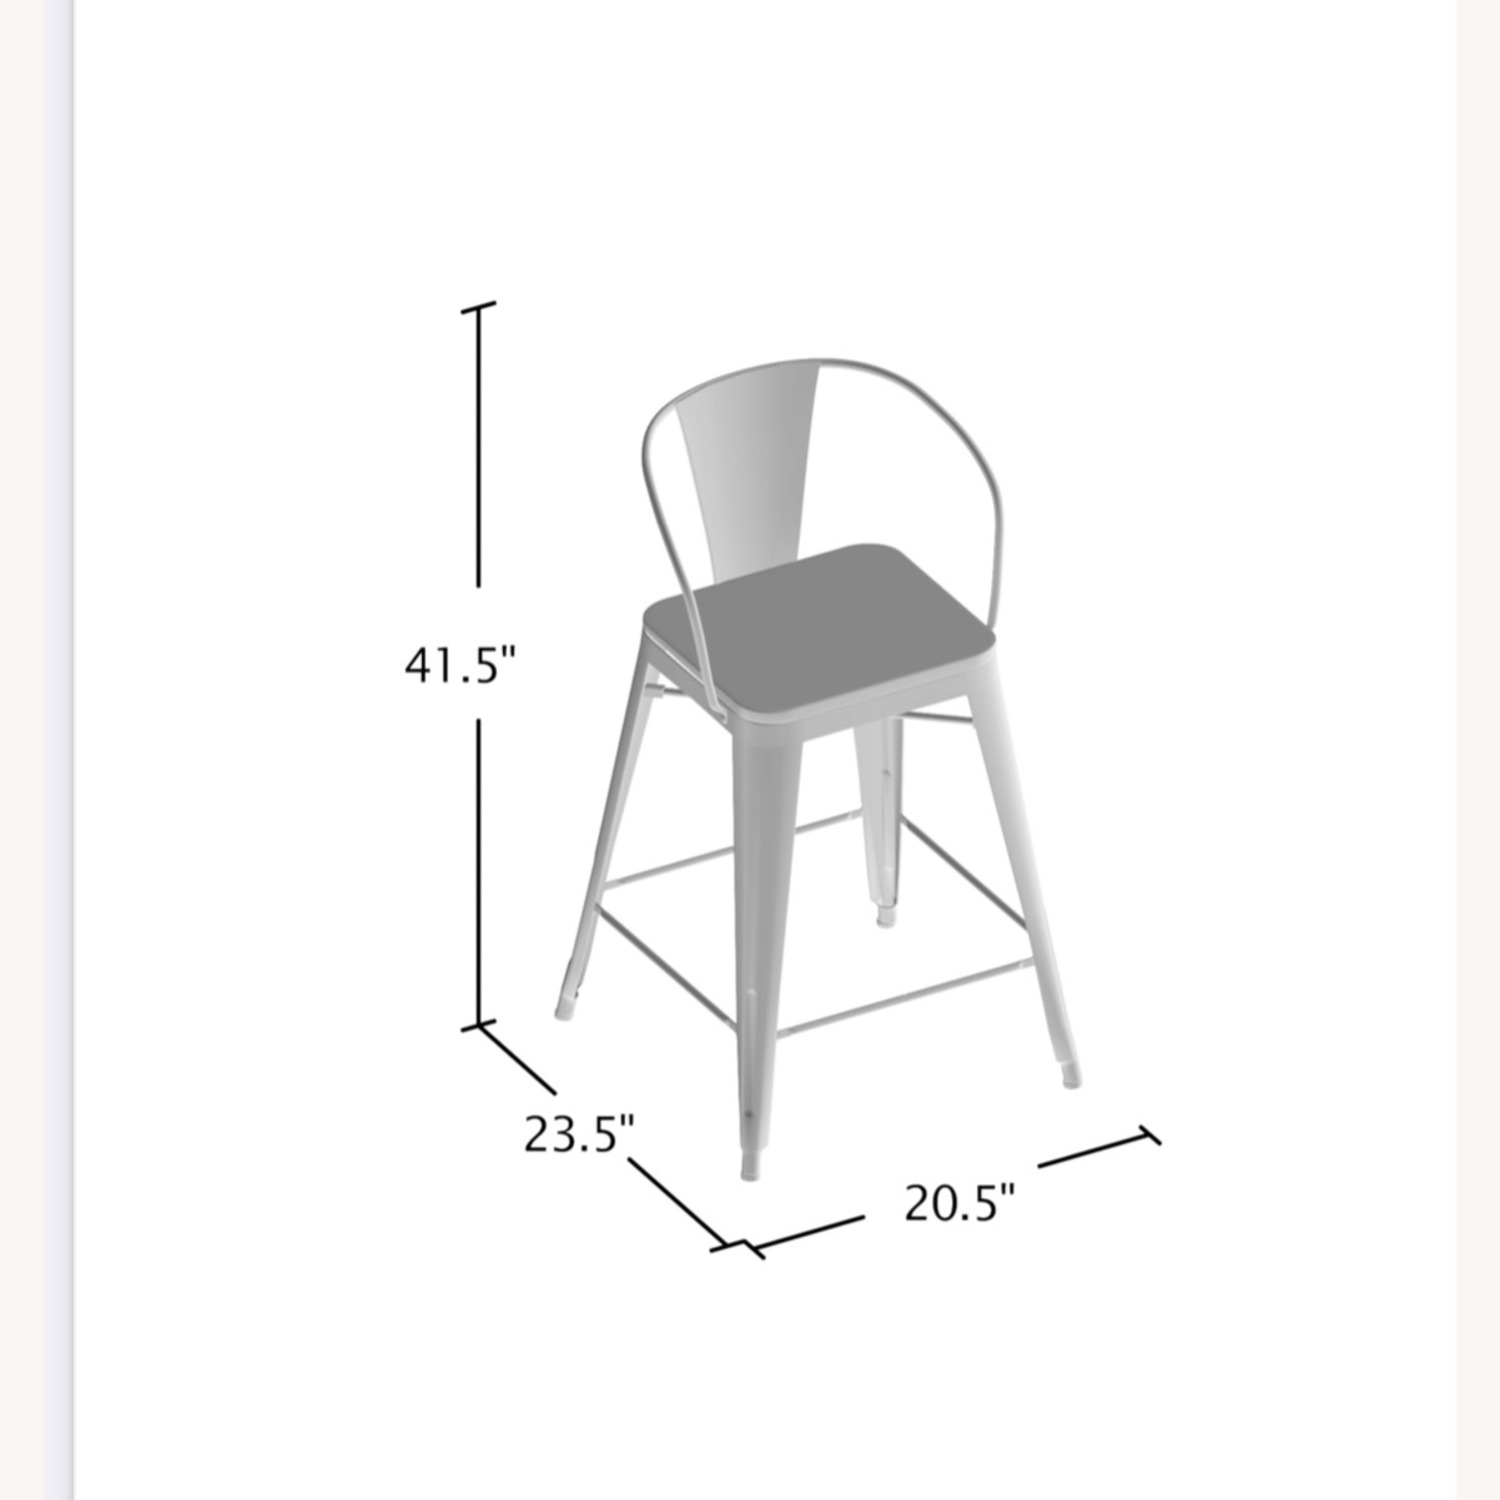 Wayfair Set of two Industrial Counter Stools - image-5